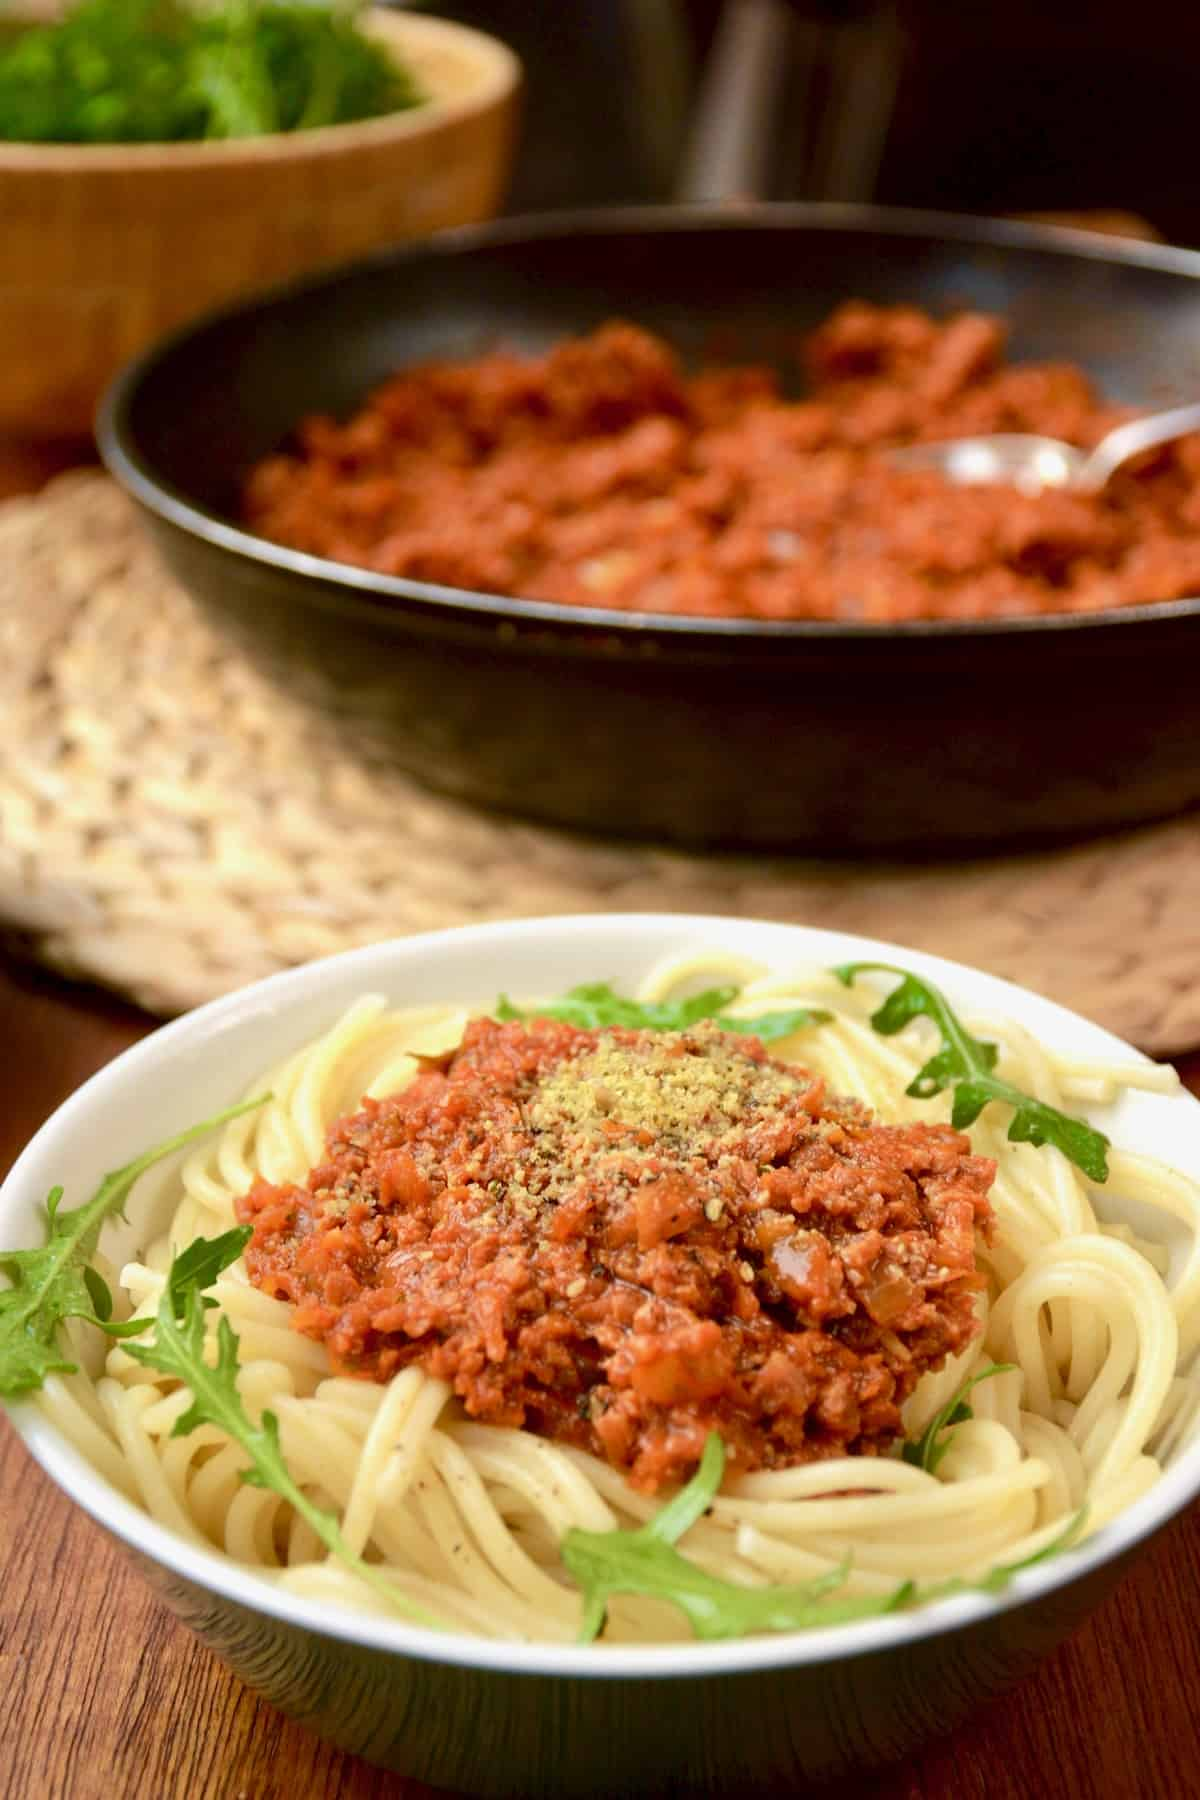 A portion of vegan spaghetti bolognese. In the background a pan full of red ragu and green salad in a wooden bowl.